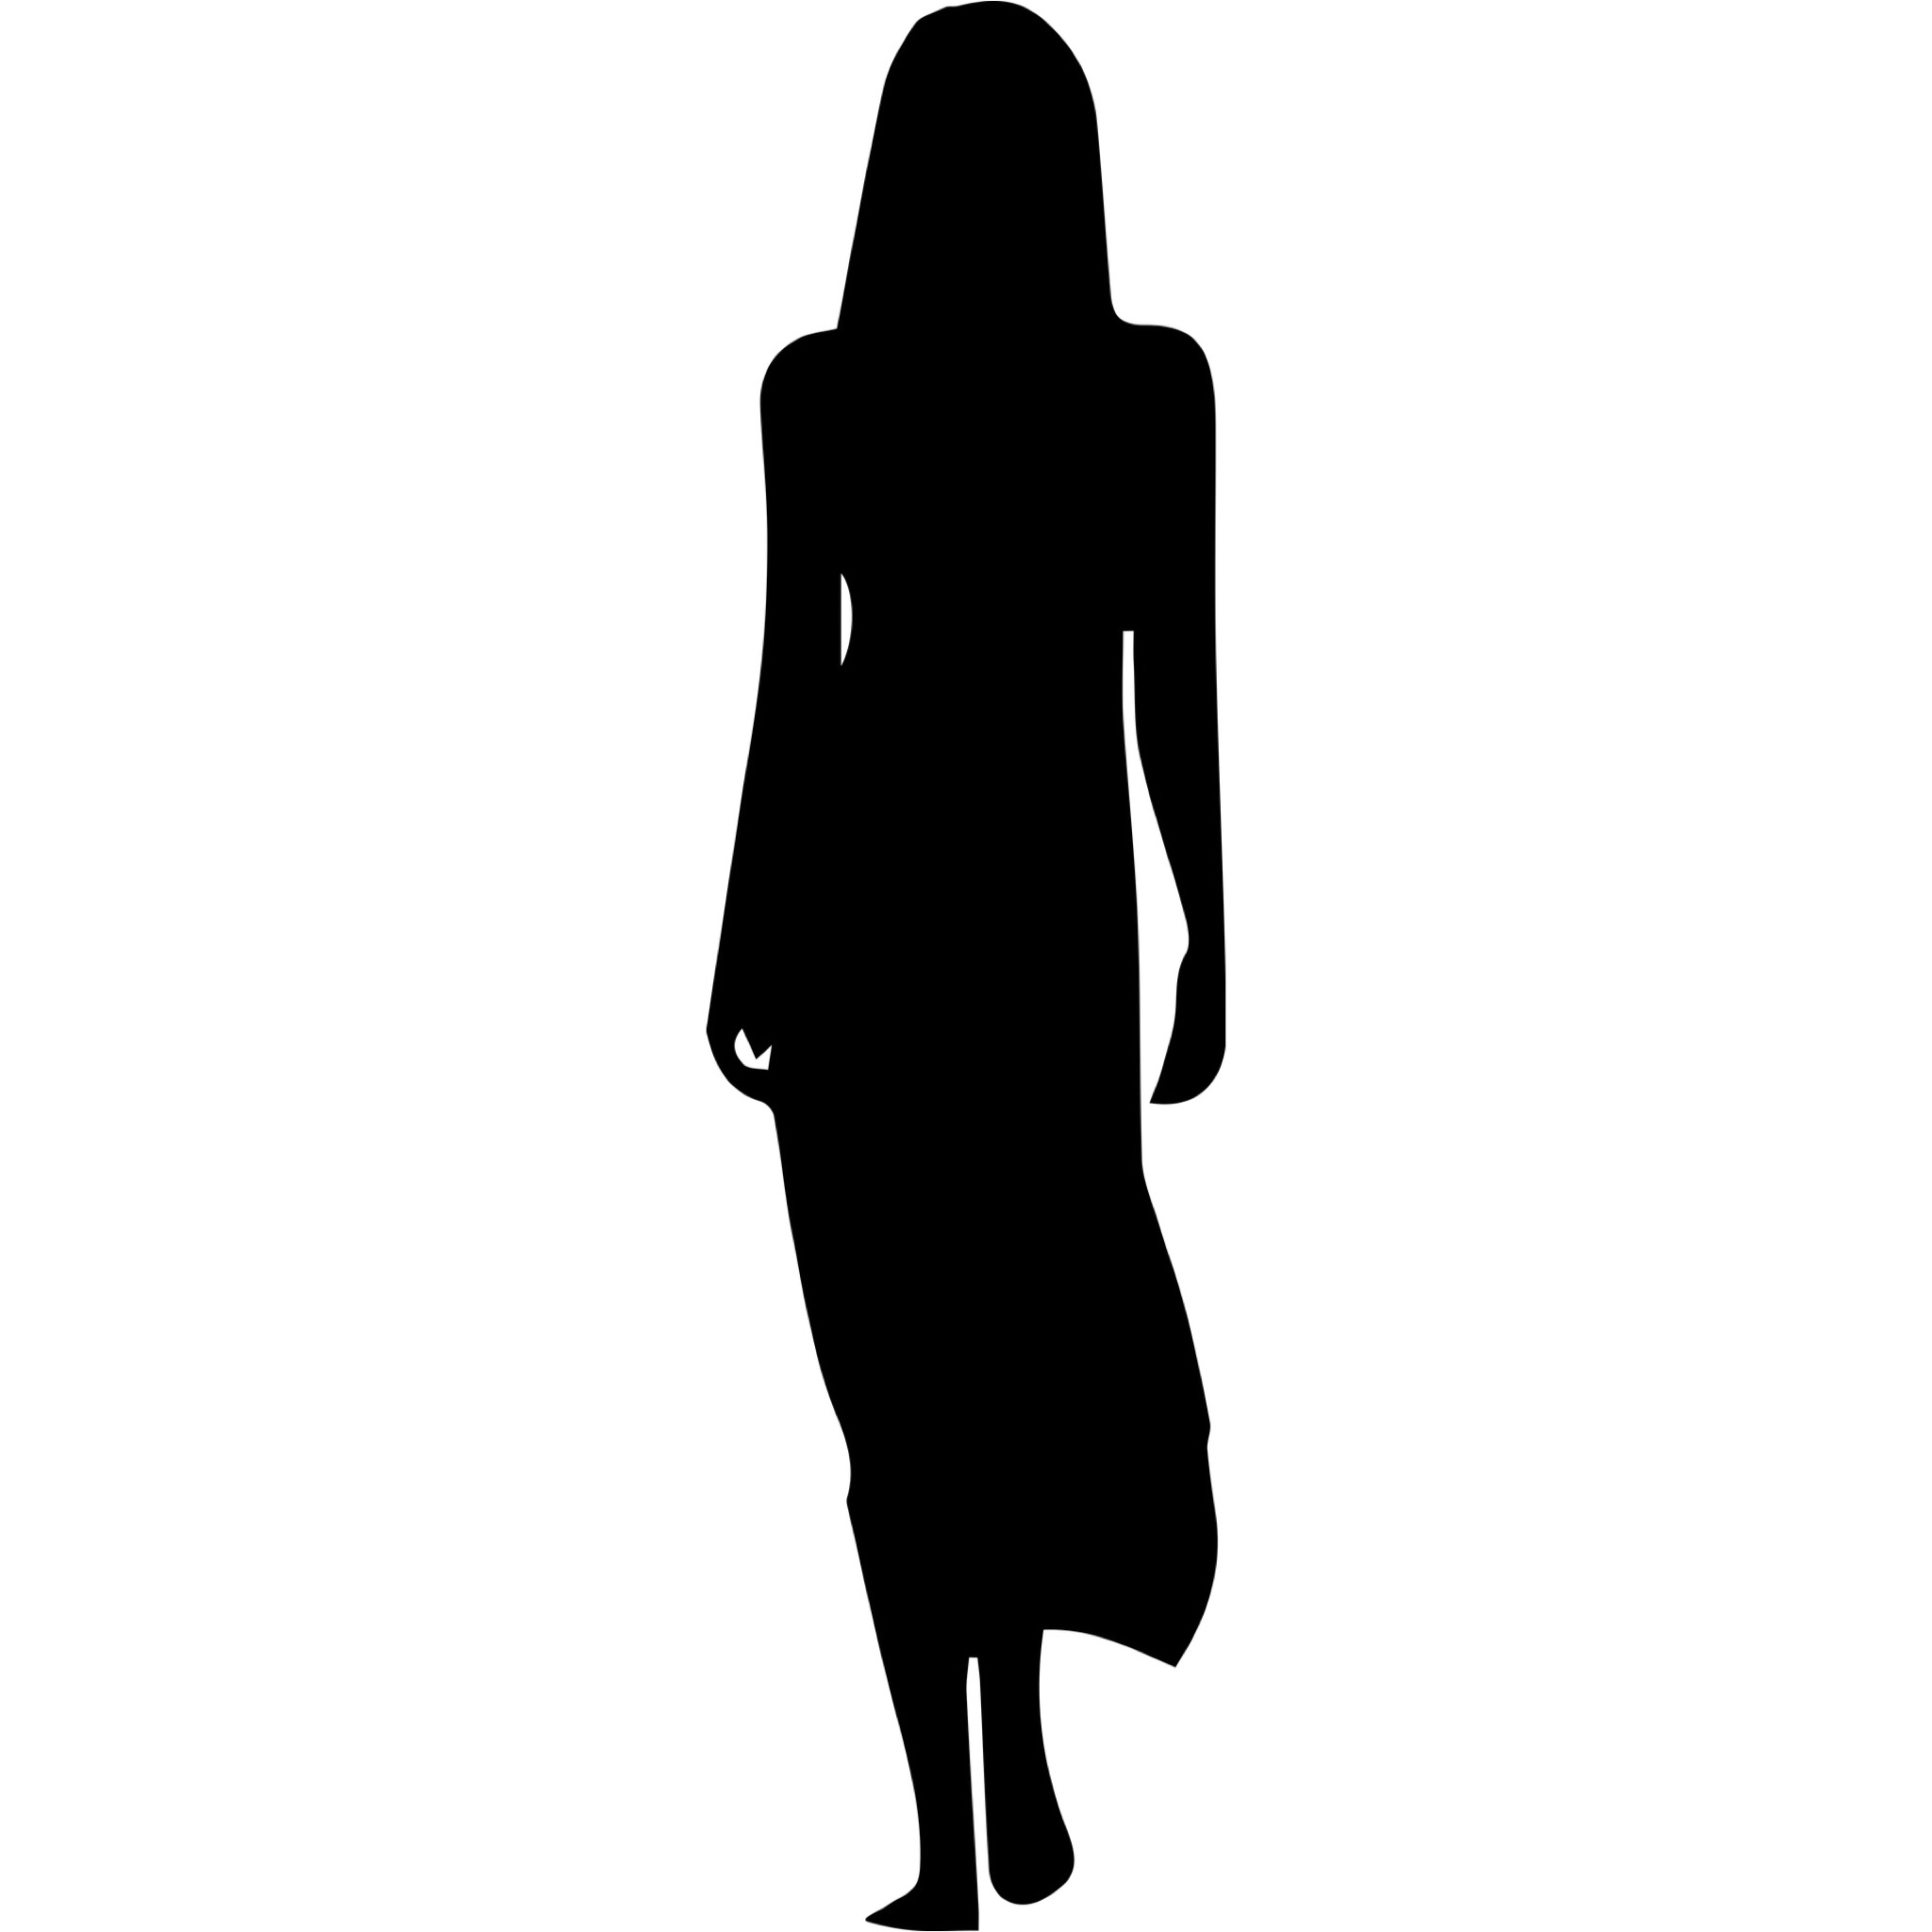 Women Outline - JWI About